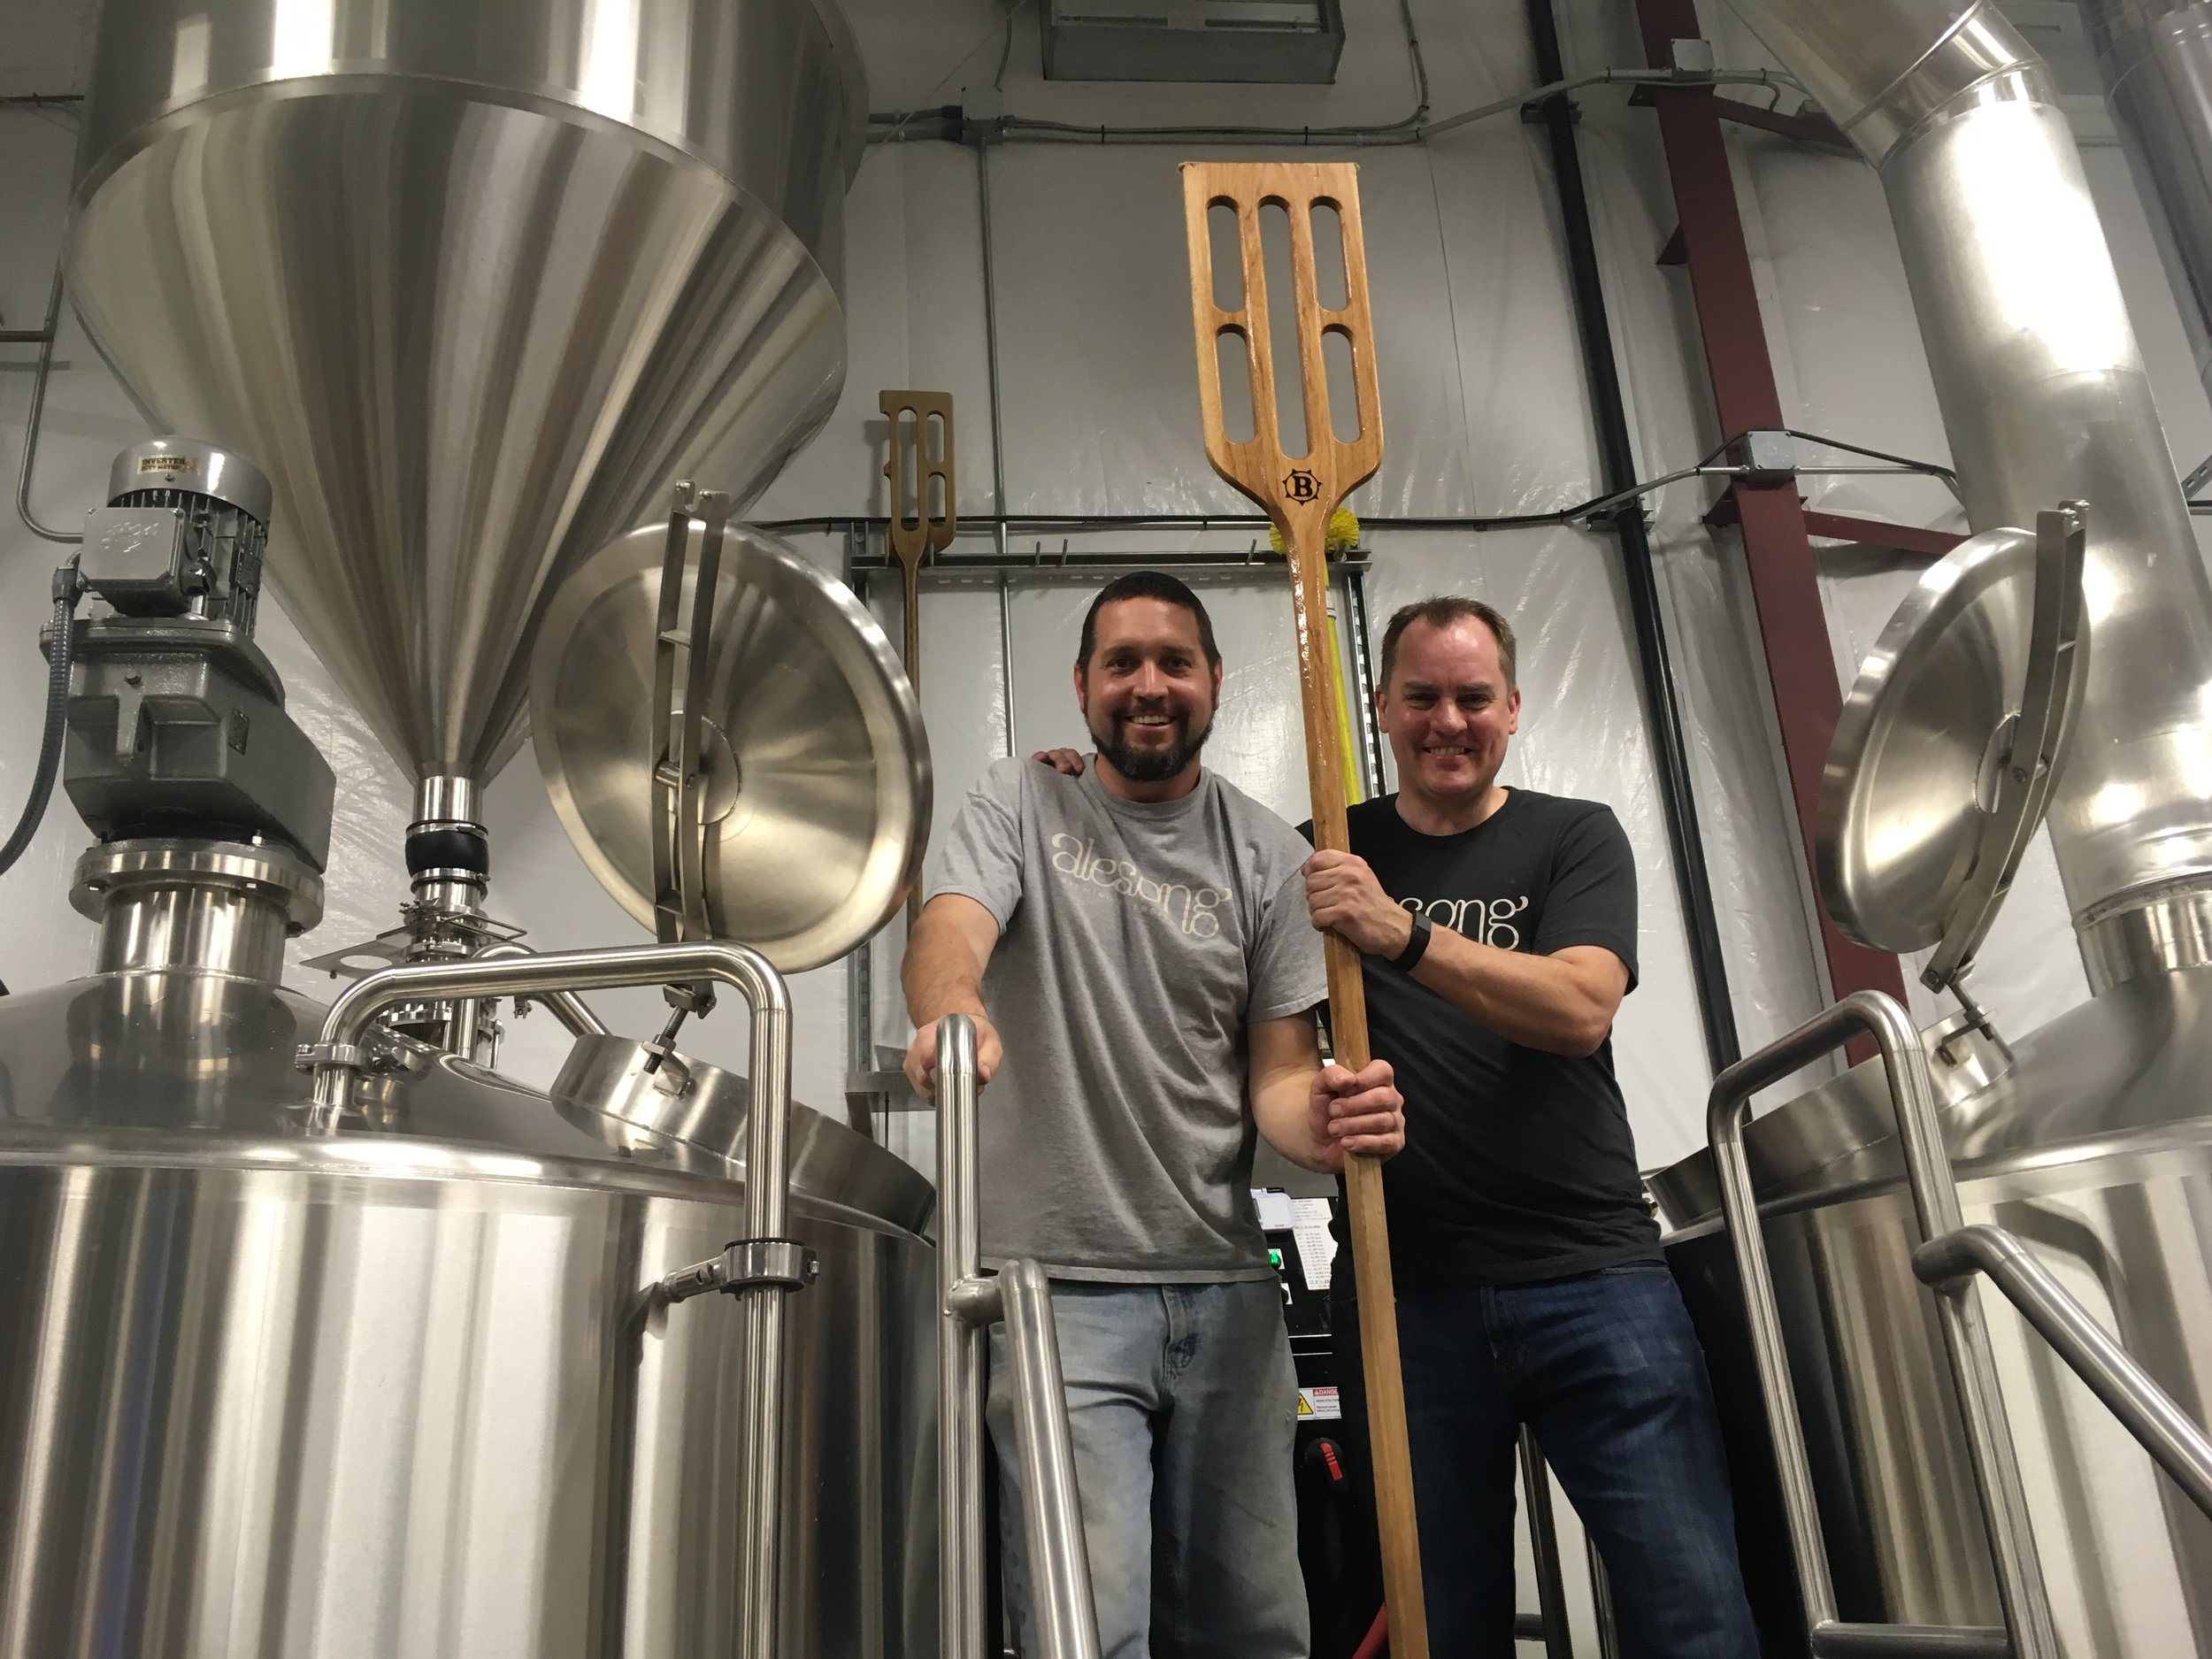 Scott Freck, Executive Director of the Eugene Symphony, with Matt on brewday.